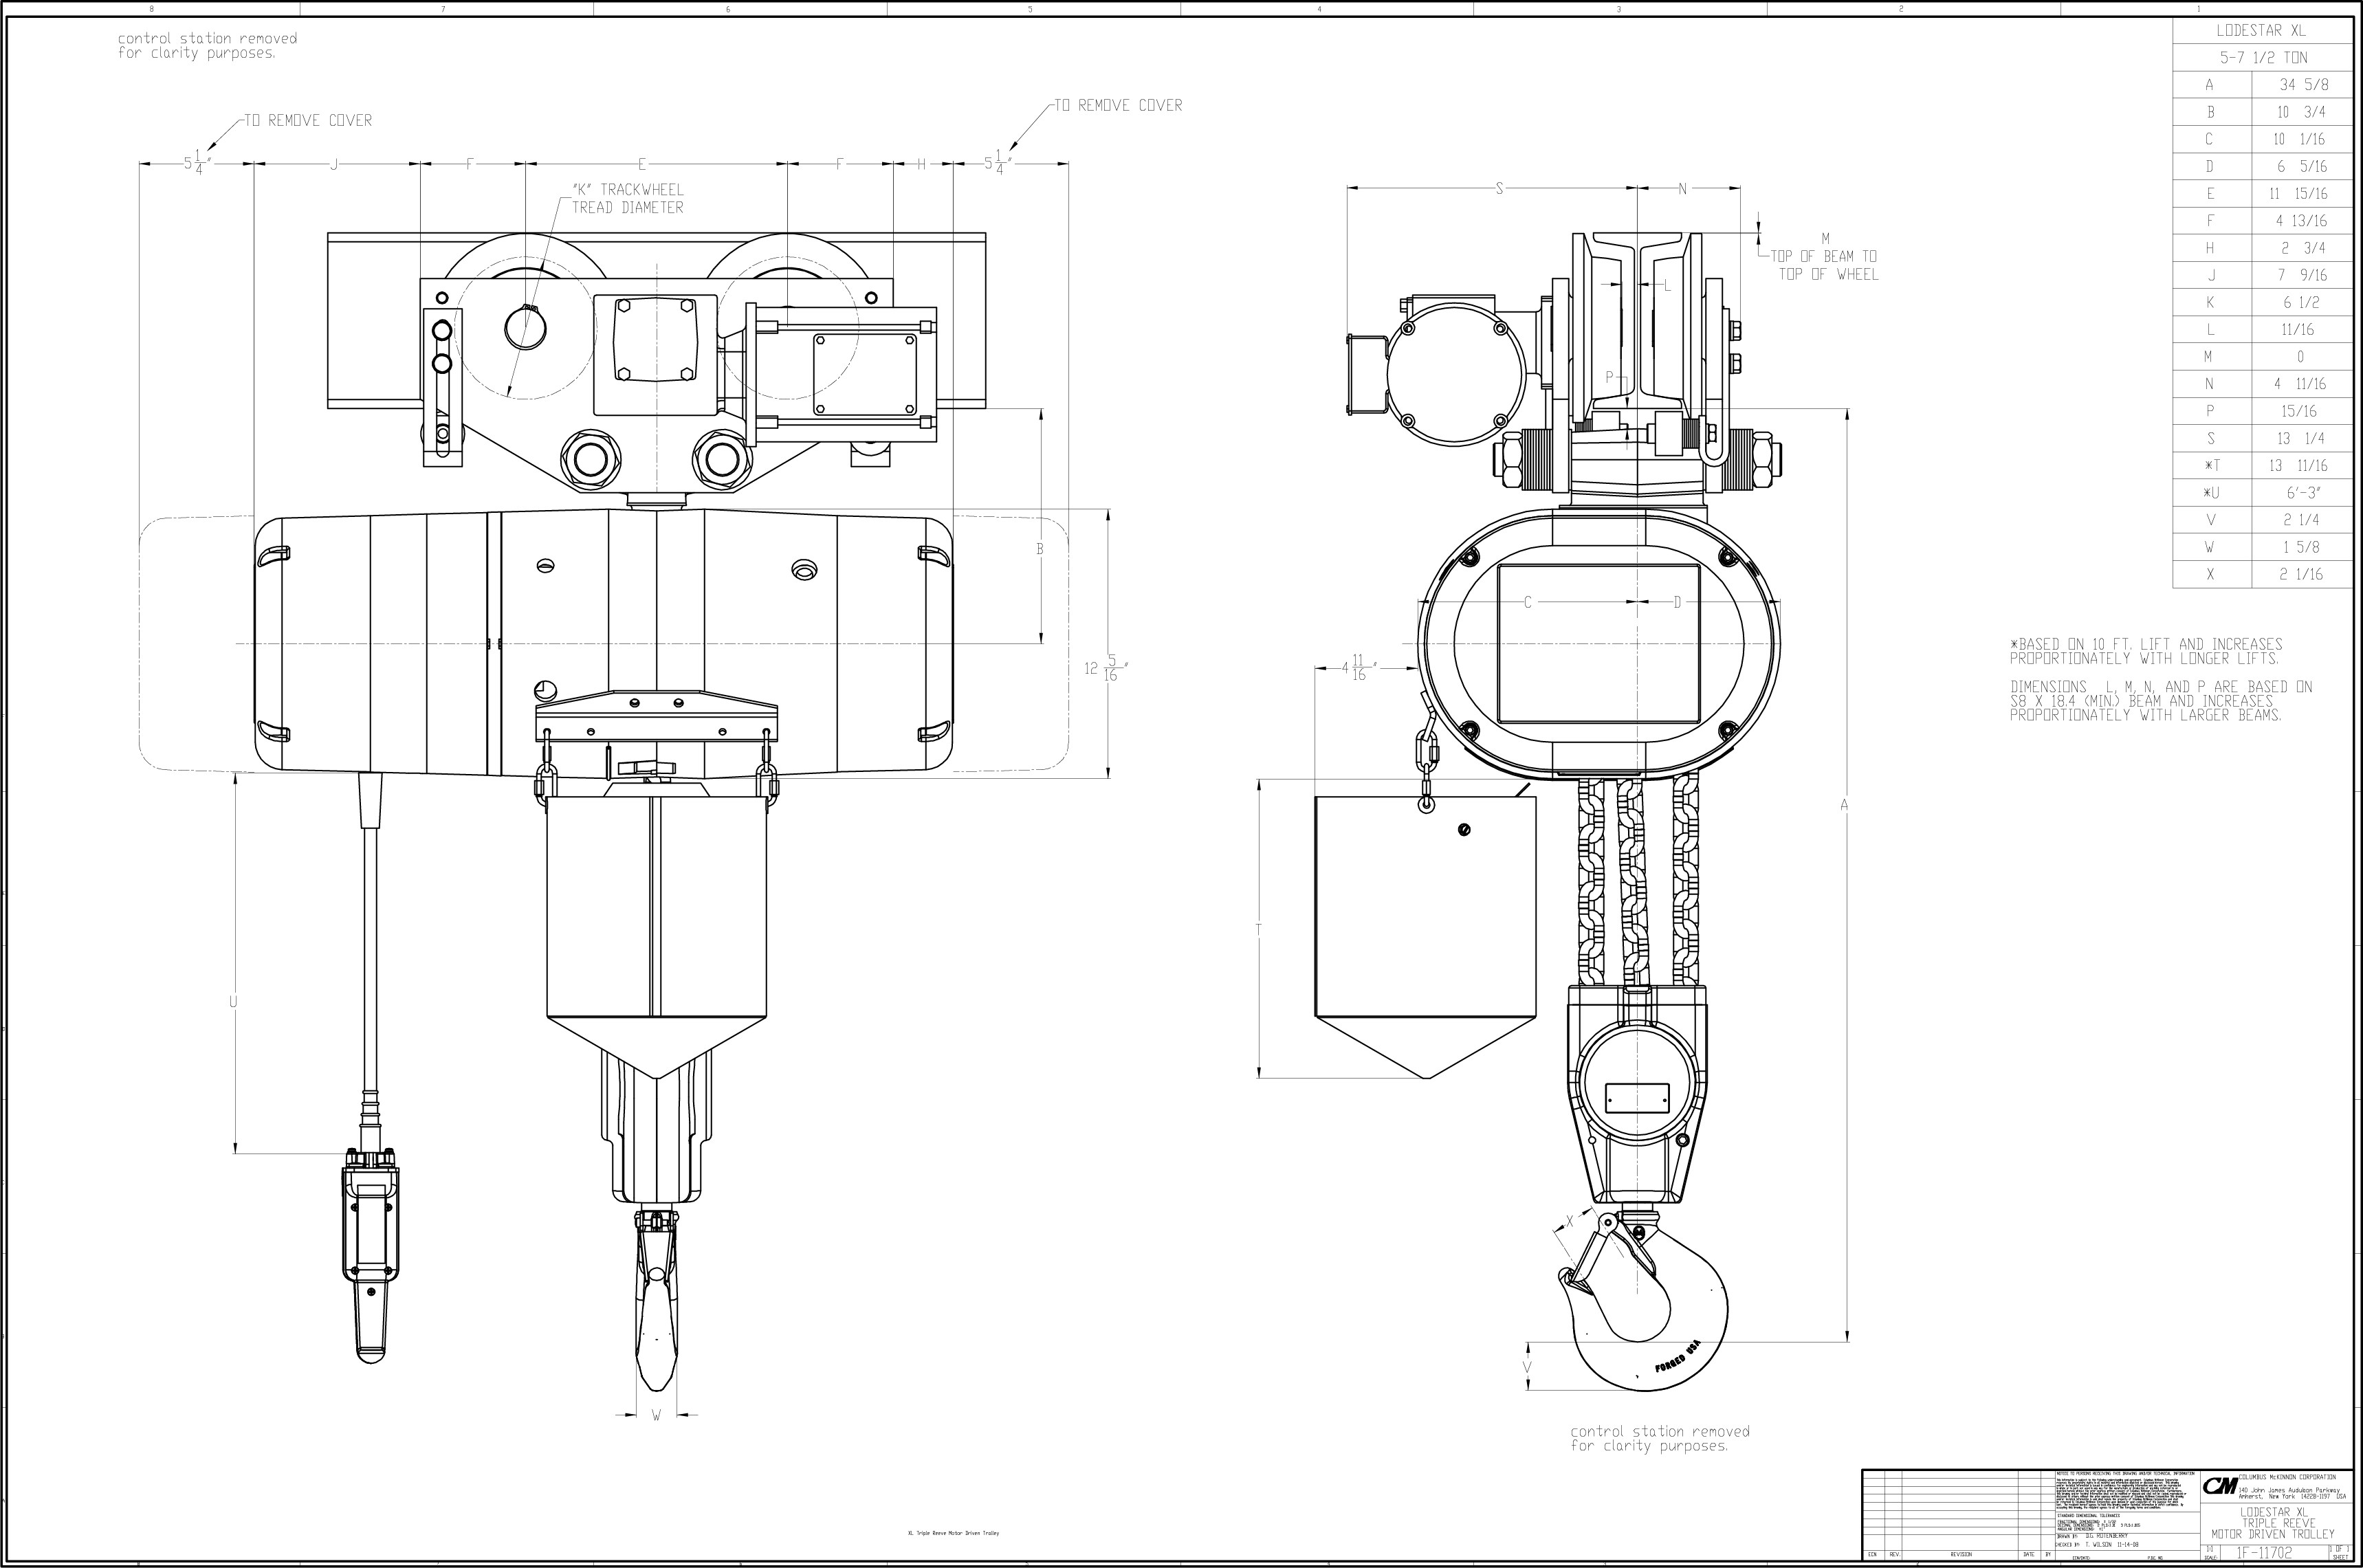 demag hoist pendant wiring diagram